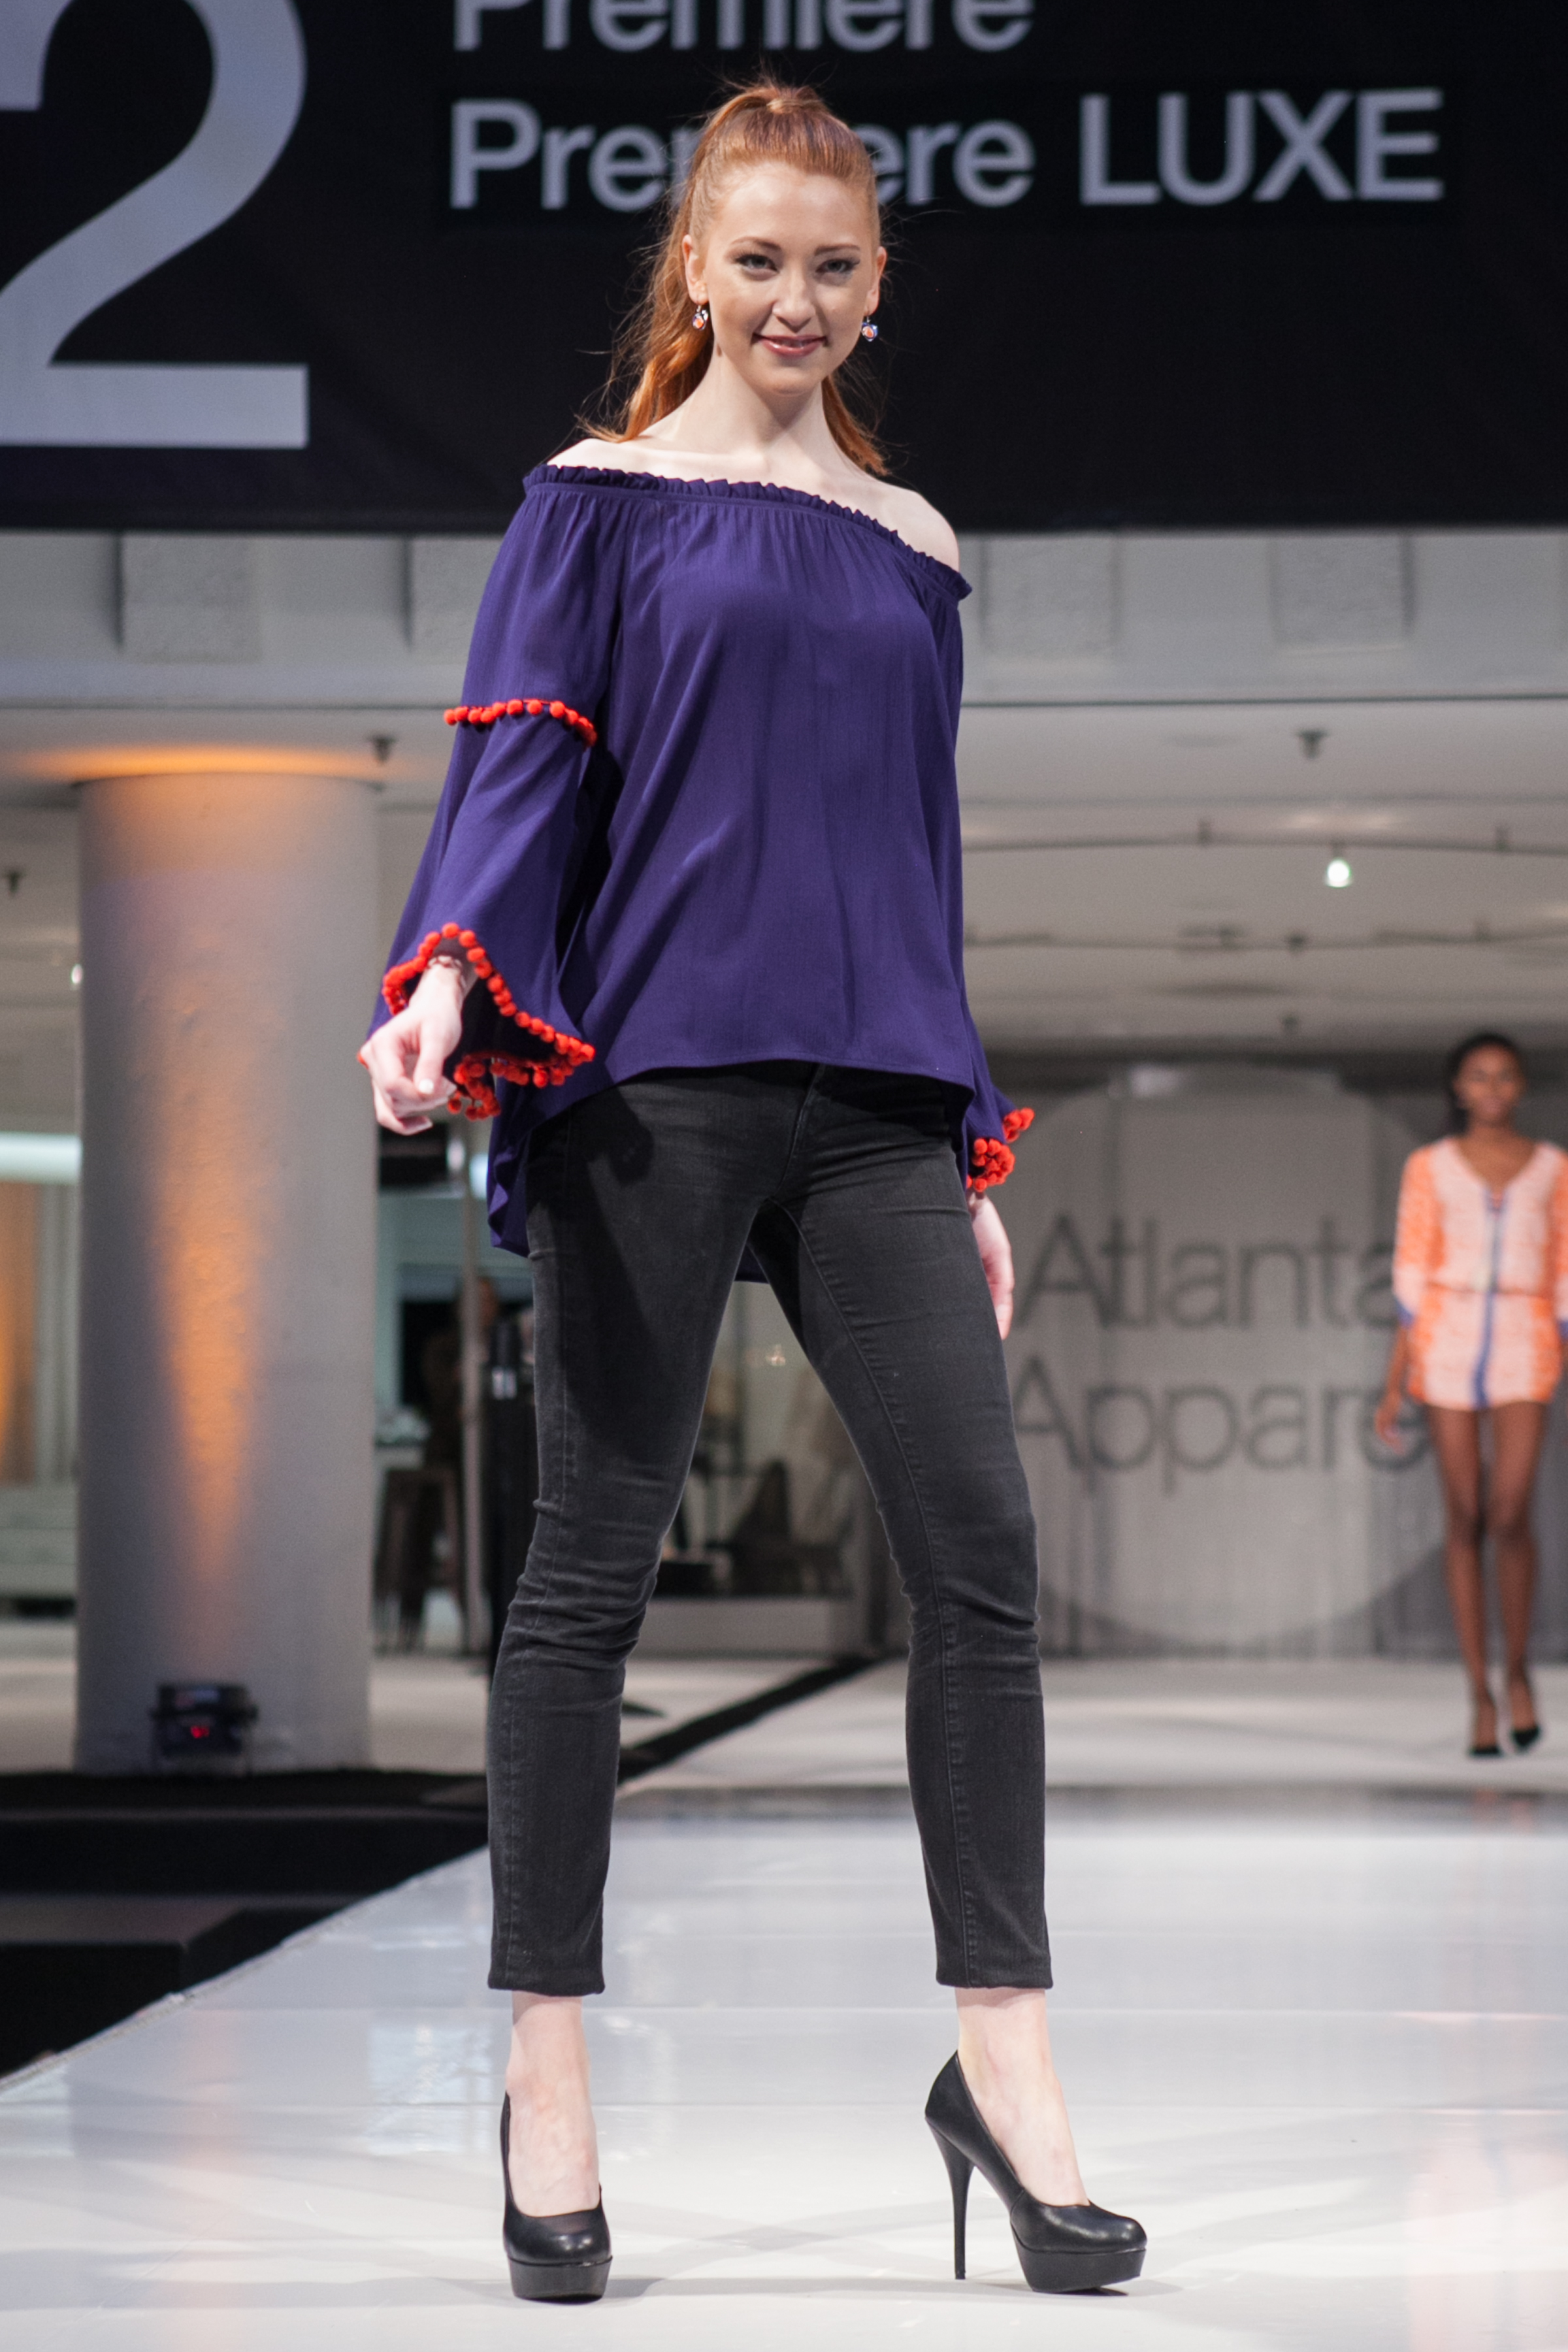 The Atlanta Apparel Market fashion show captured school spirit for fall with Game Day colors.